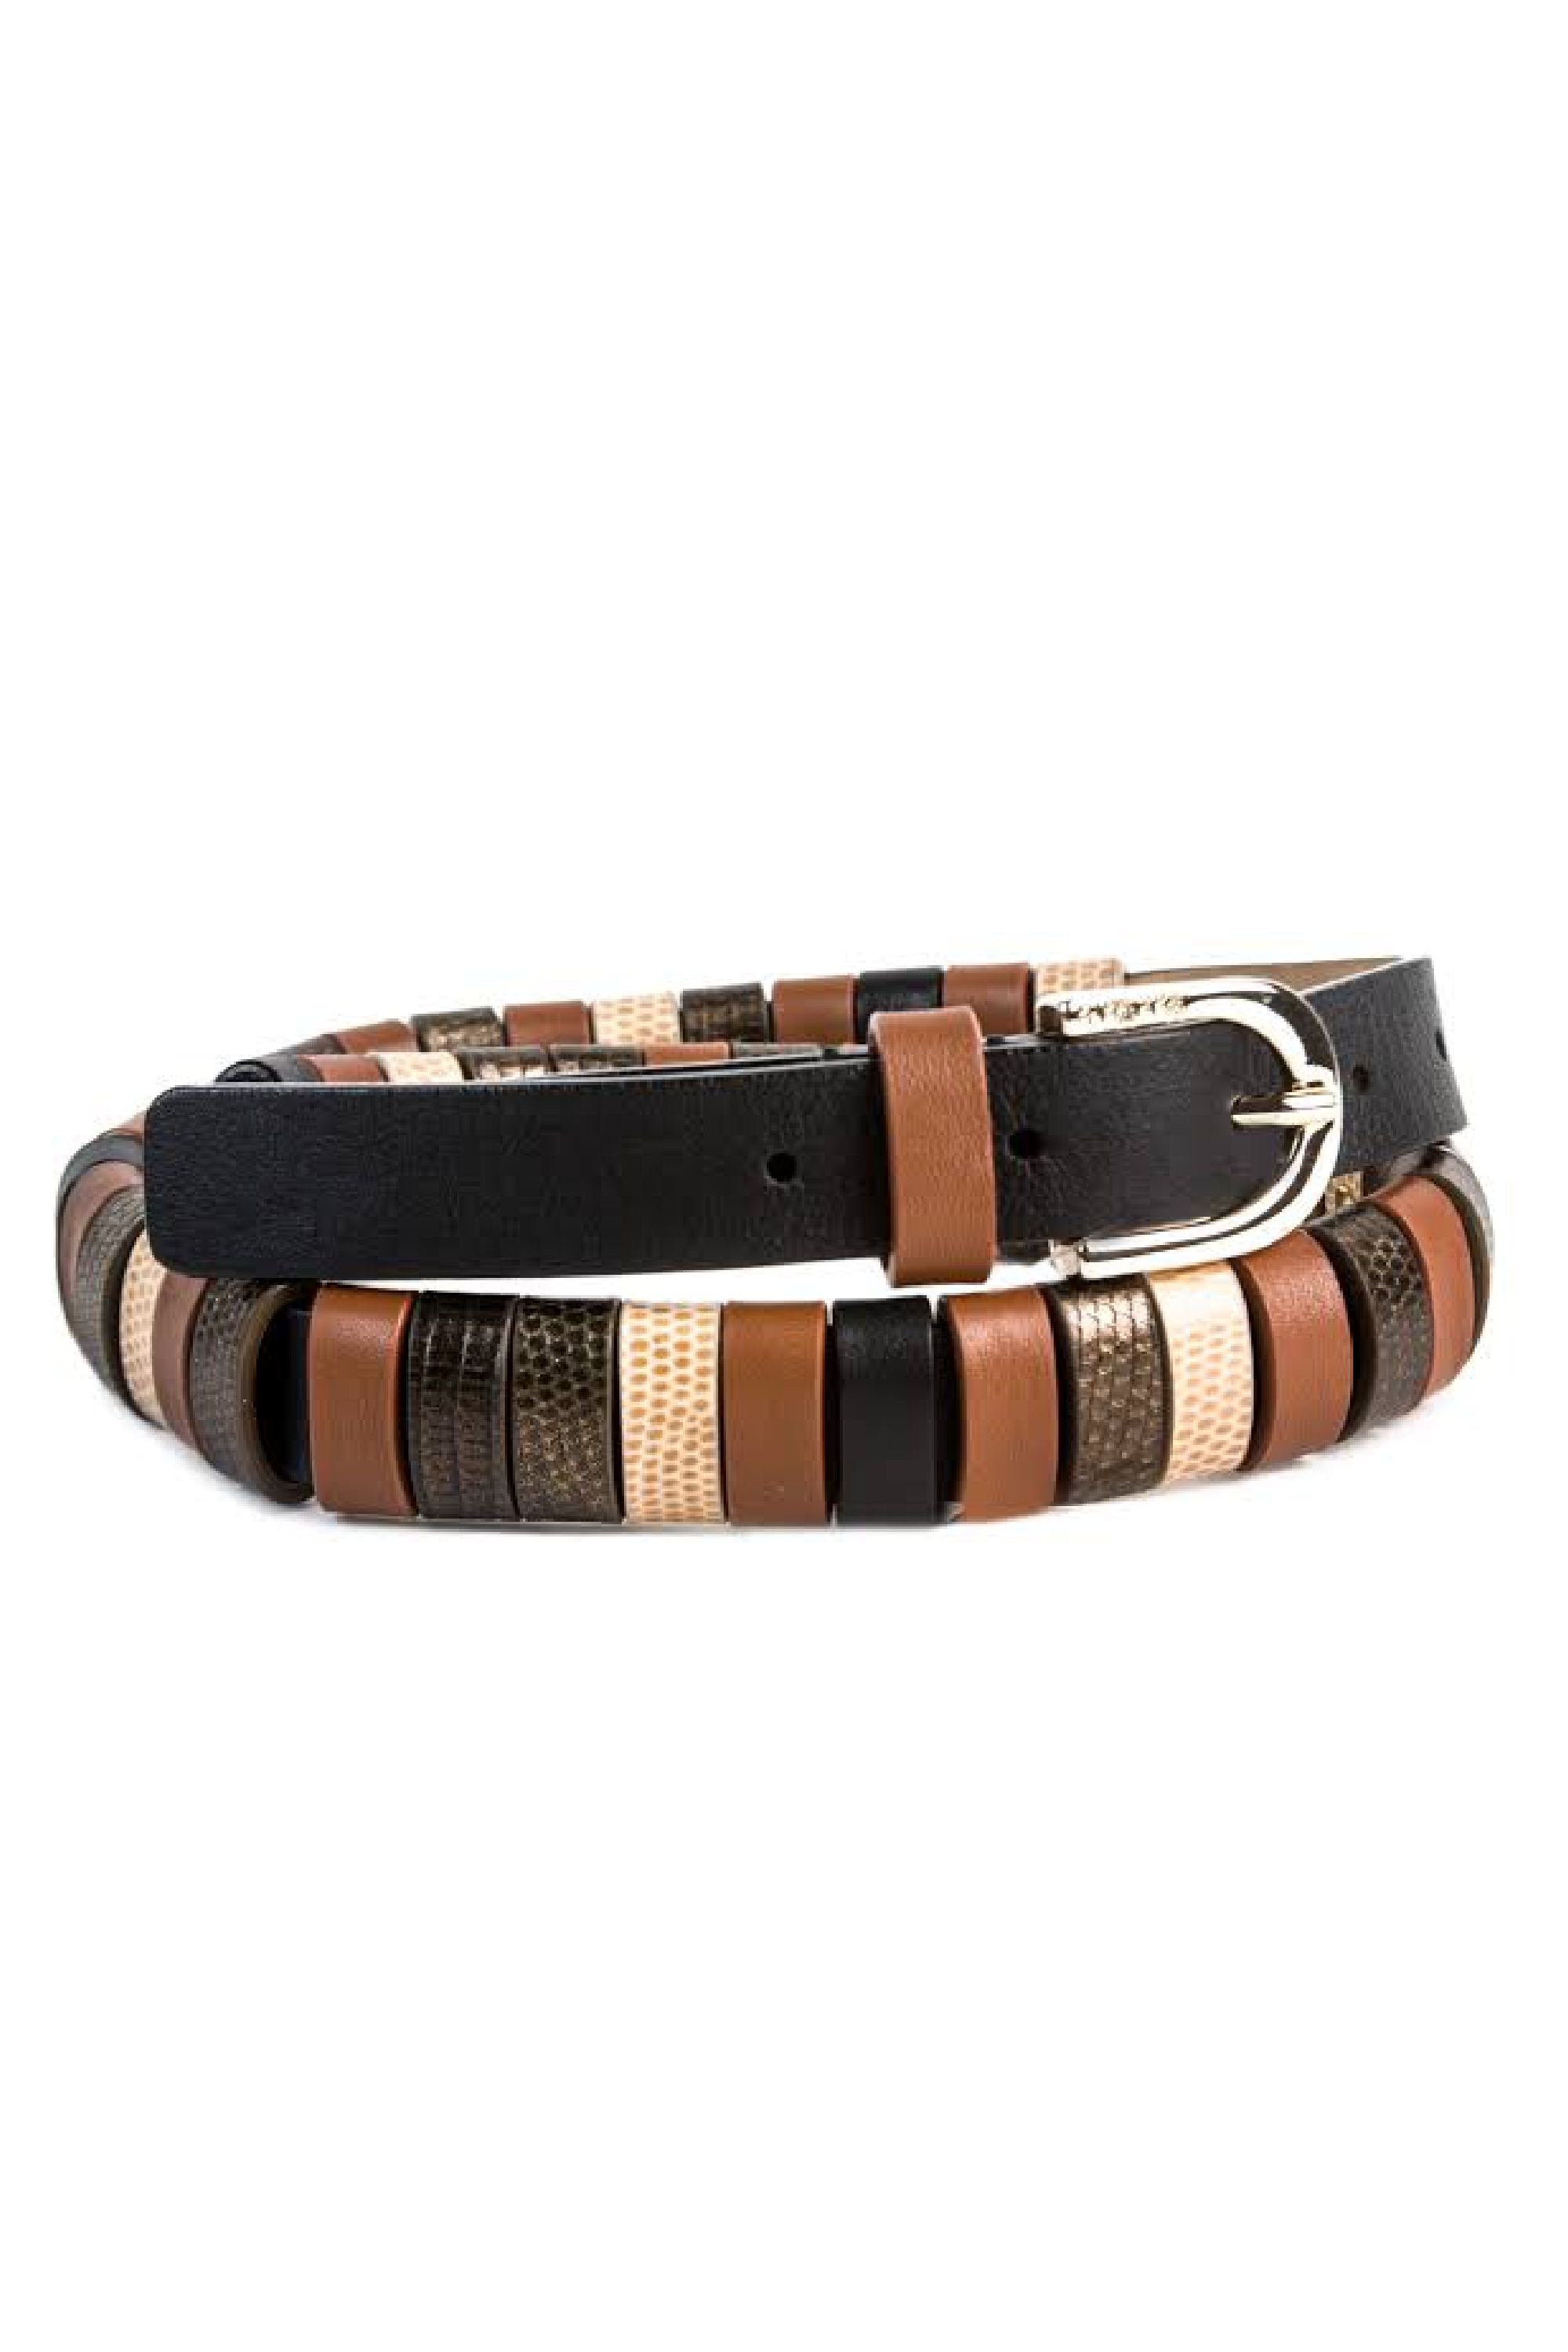 Gelada Leather Belt - The Bobby Boga